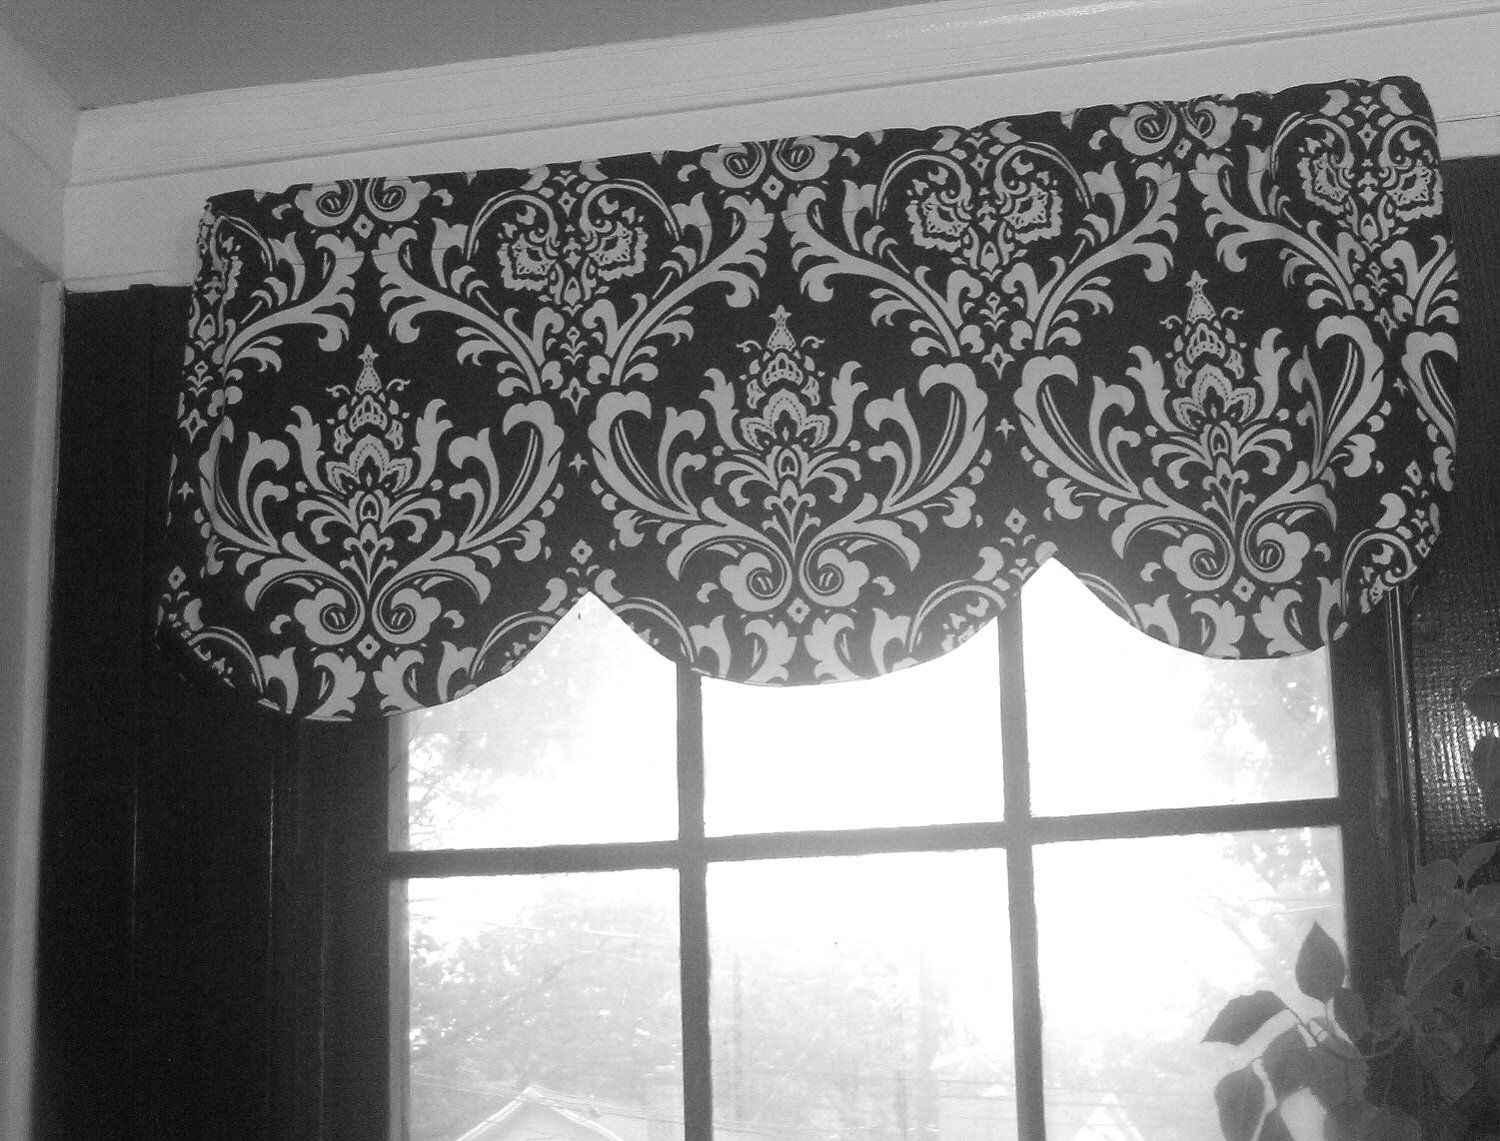 Window Curtain Valance Damask Black And White 42 X 16 Inches Etsy White Kitchen Curtains Black Curtains Damask Curtains